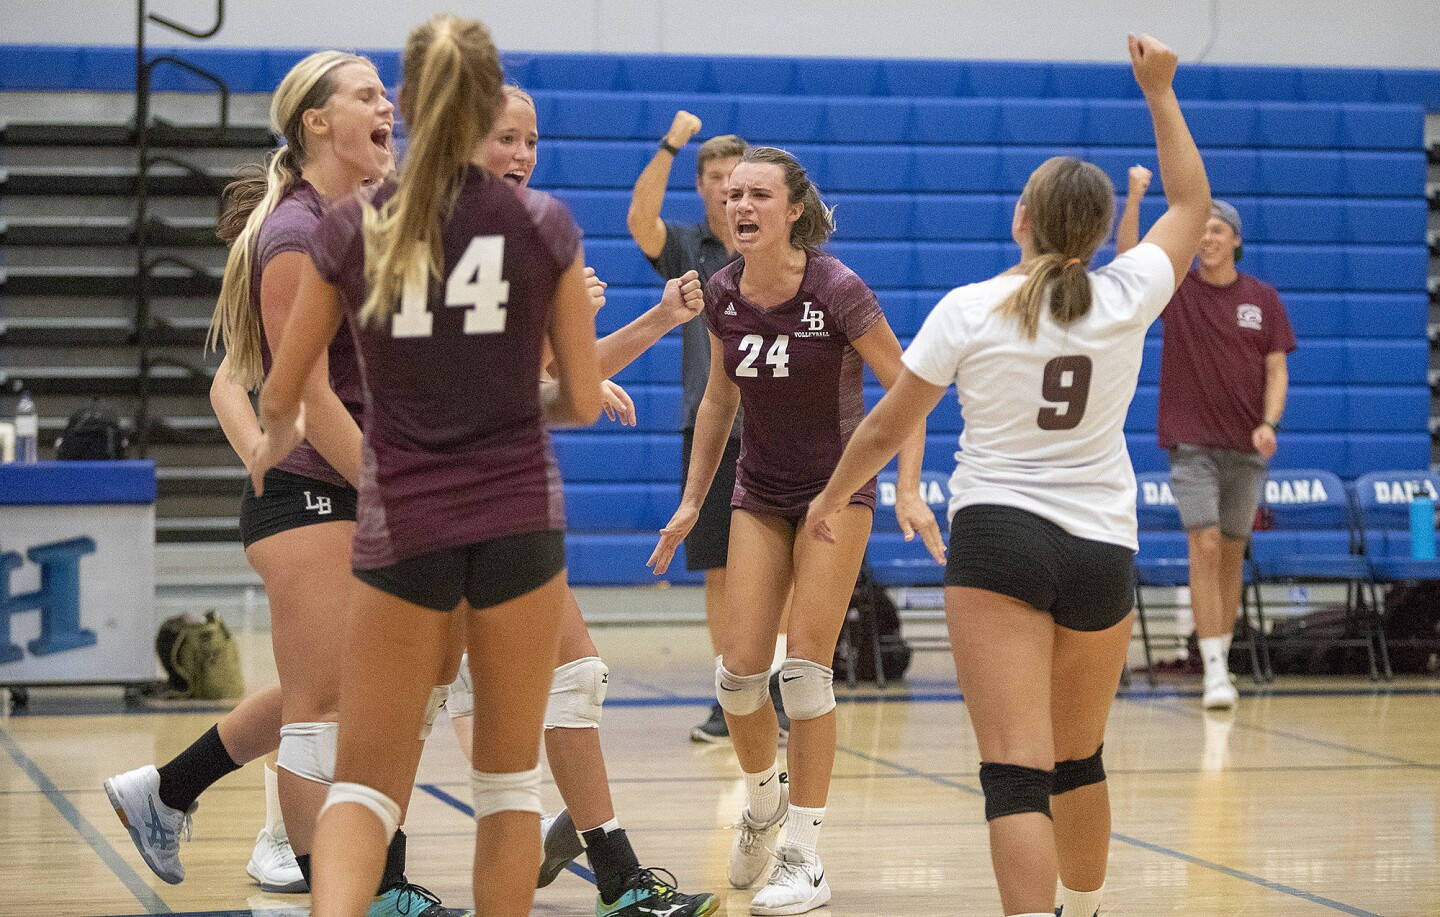 Photo gallery: Laguna Beach vs. Dana Hills in girls' volleyball